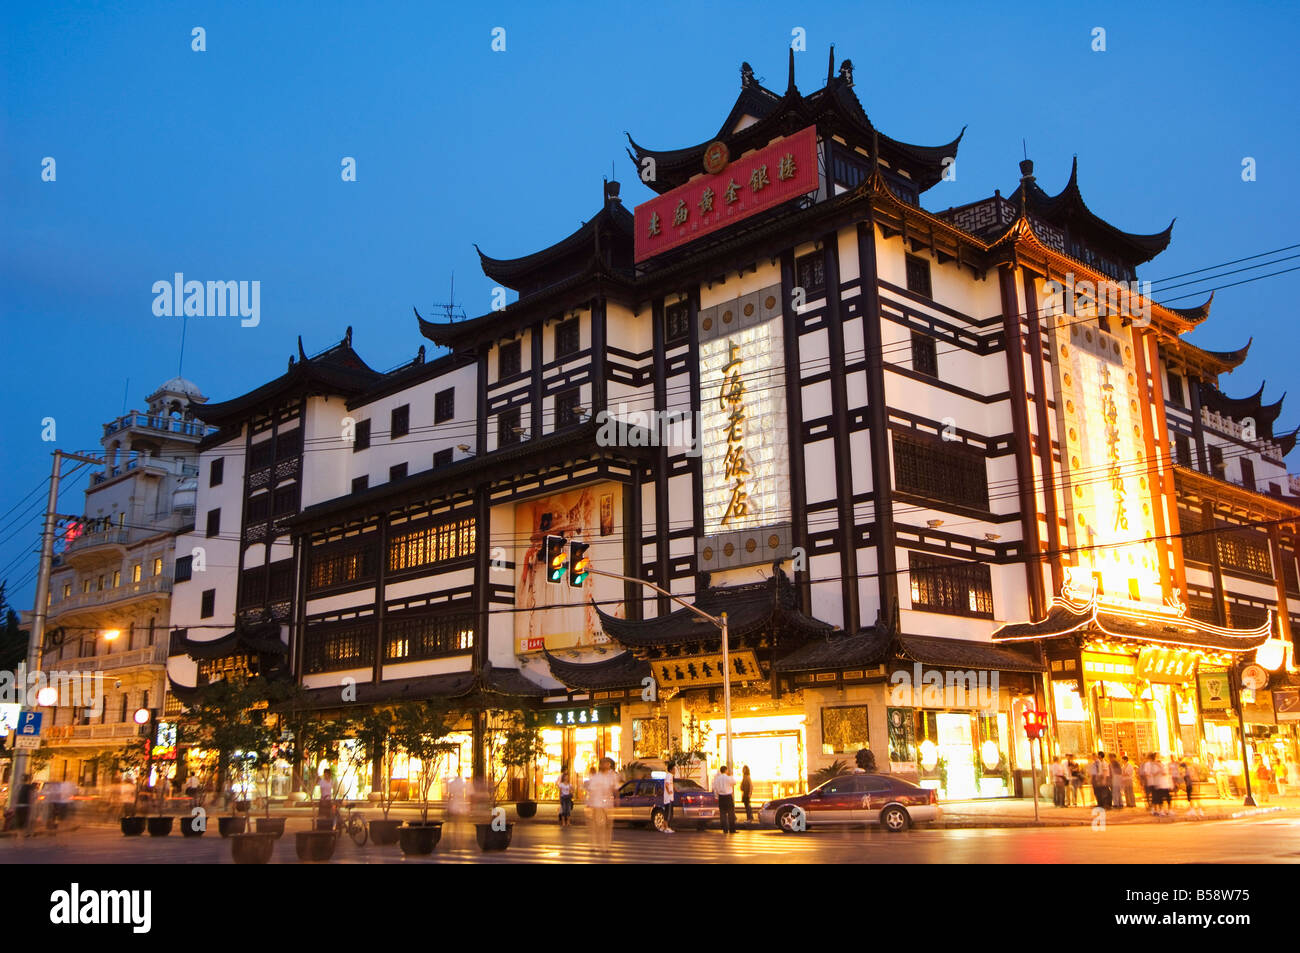 Yuyuan Garden Bazaar buildings founded by Ming dynasty Pan family illuminated in the Old Chinese city district, - Stock Image